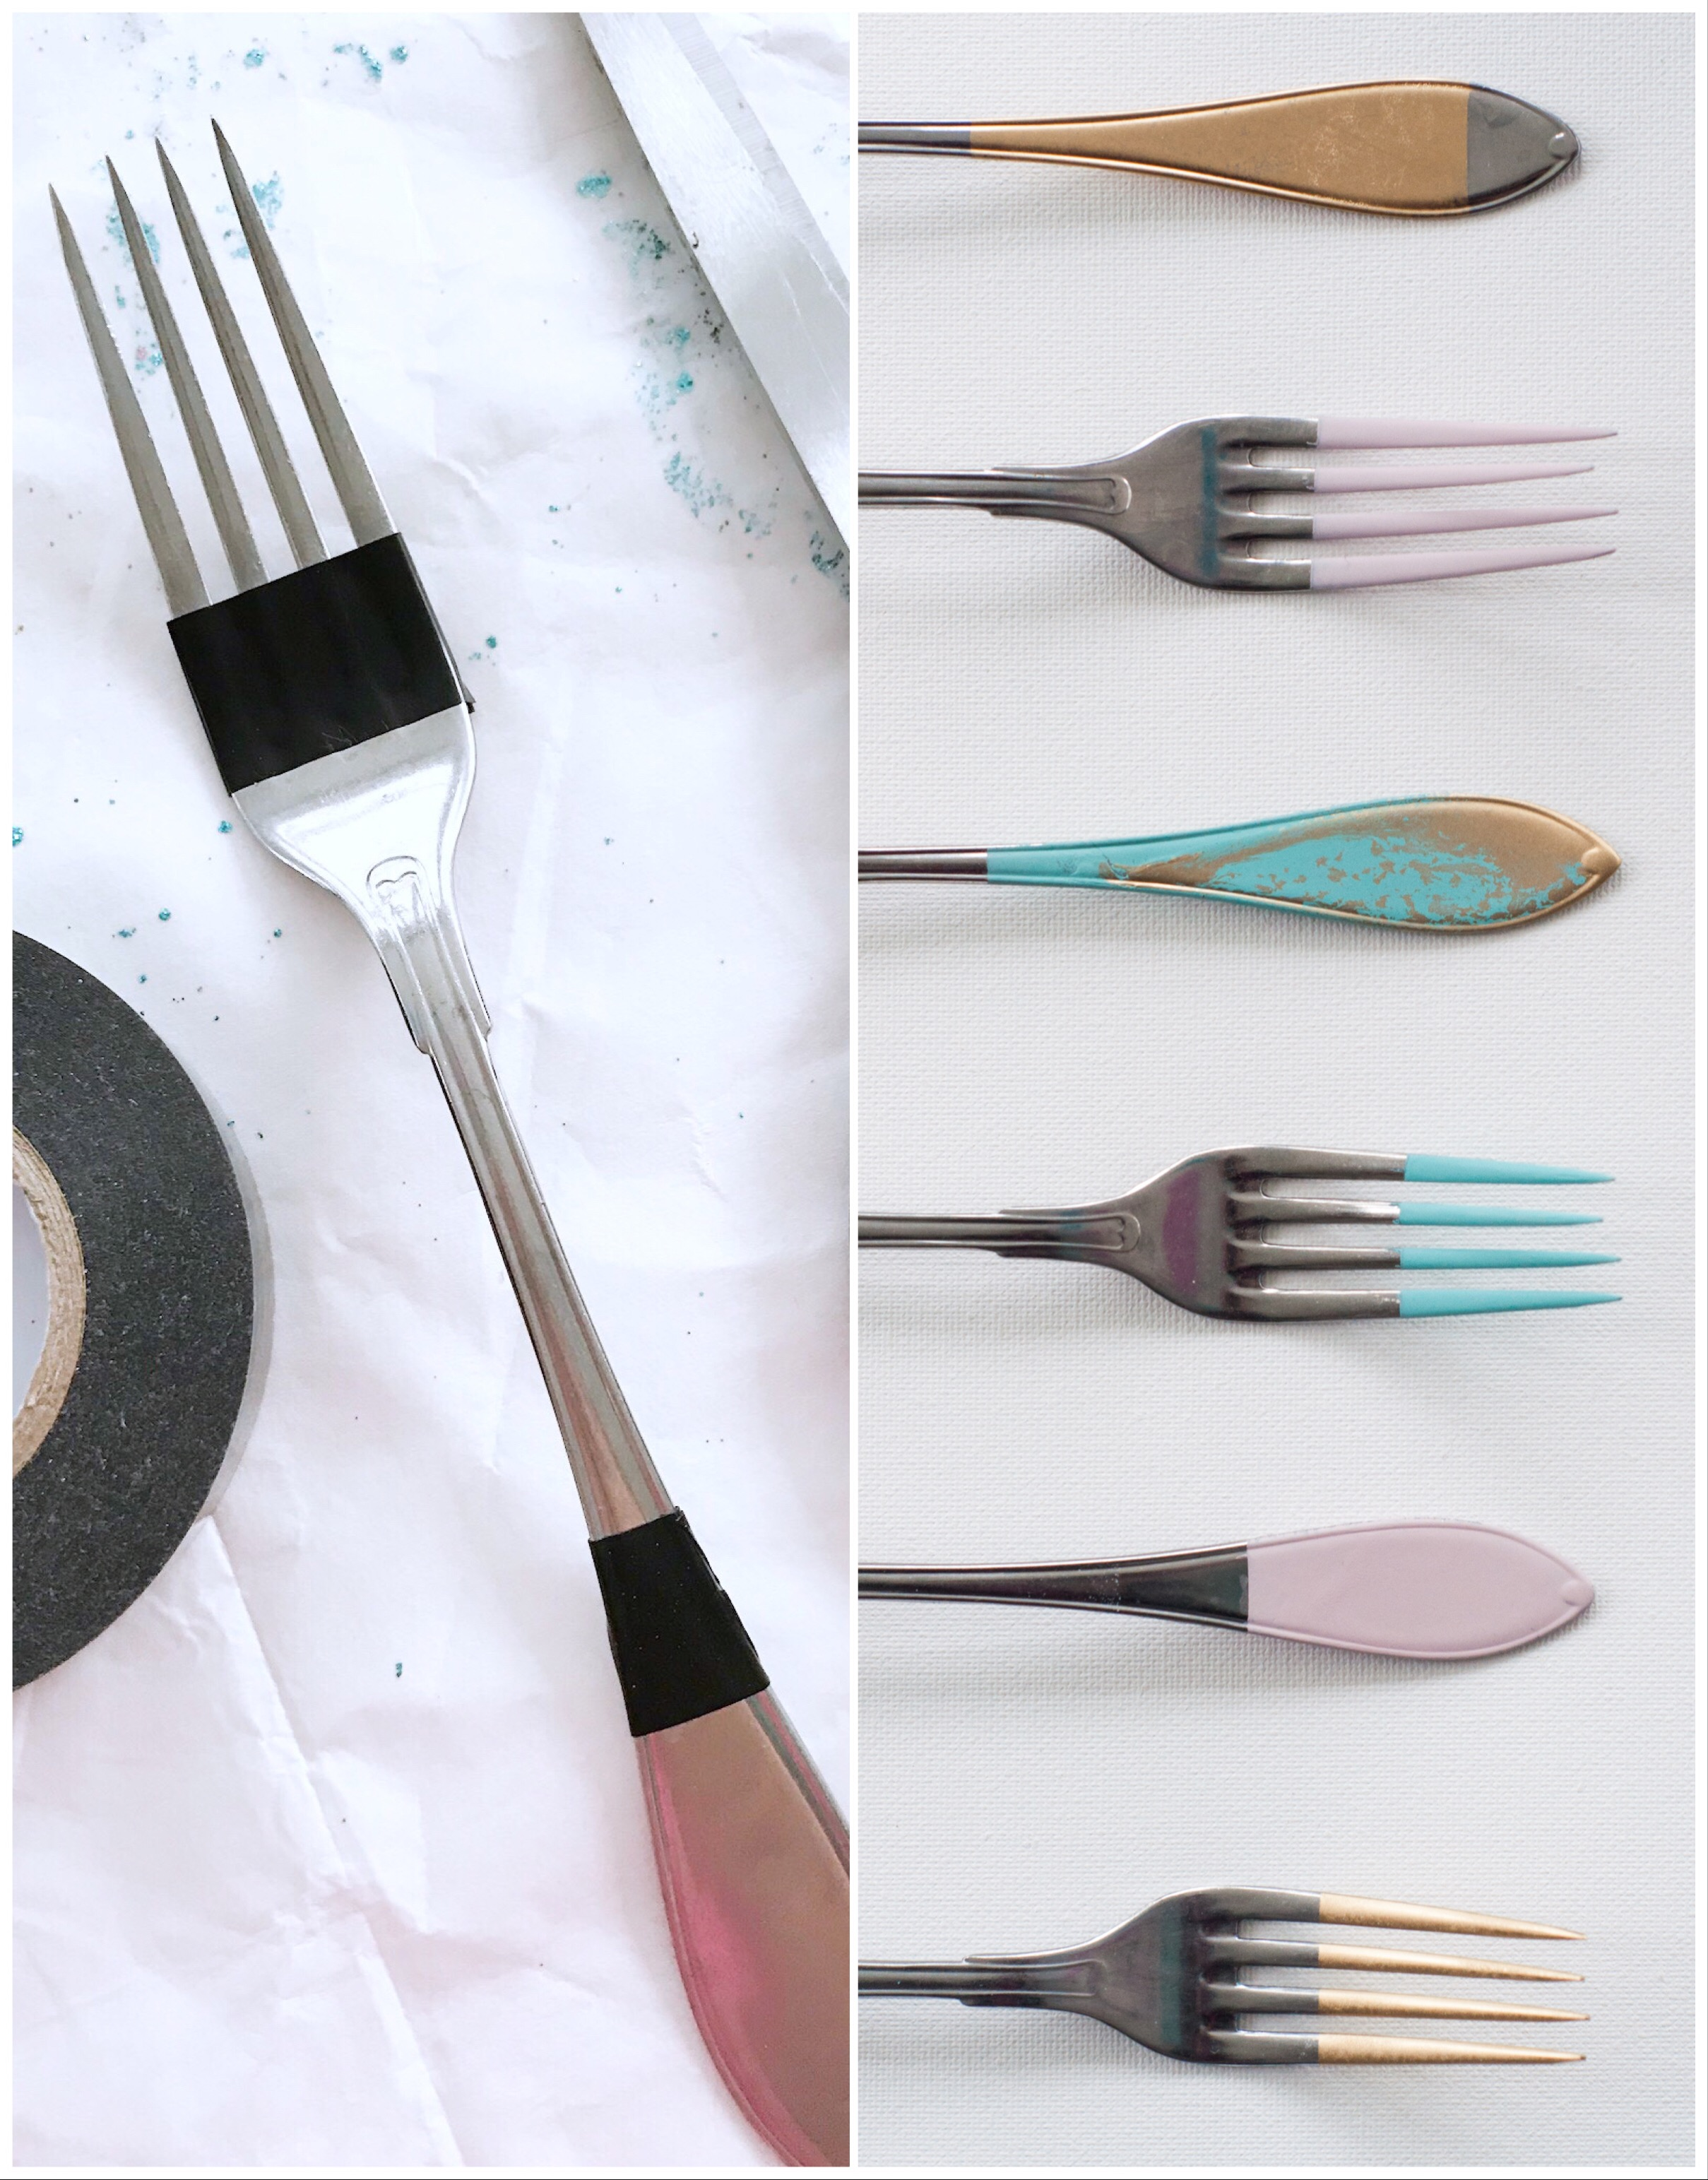 How to Paint Cutlery Fröken Turkos / Miss Turquoise